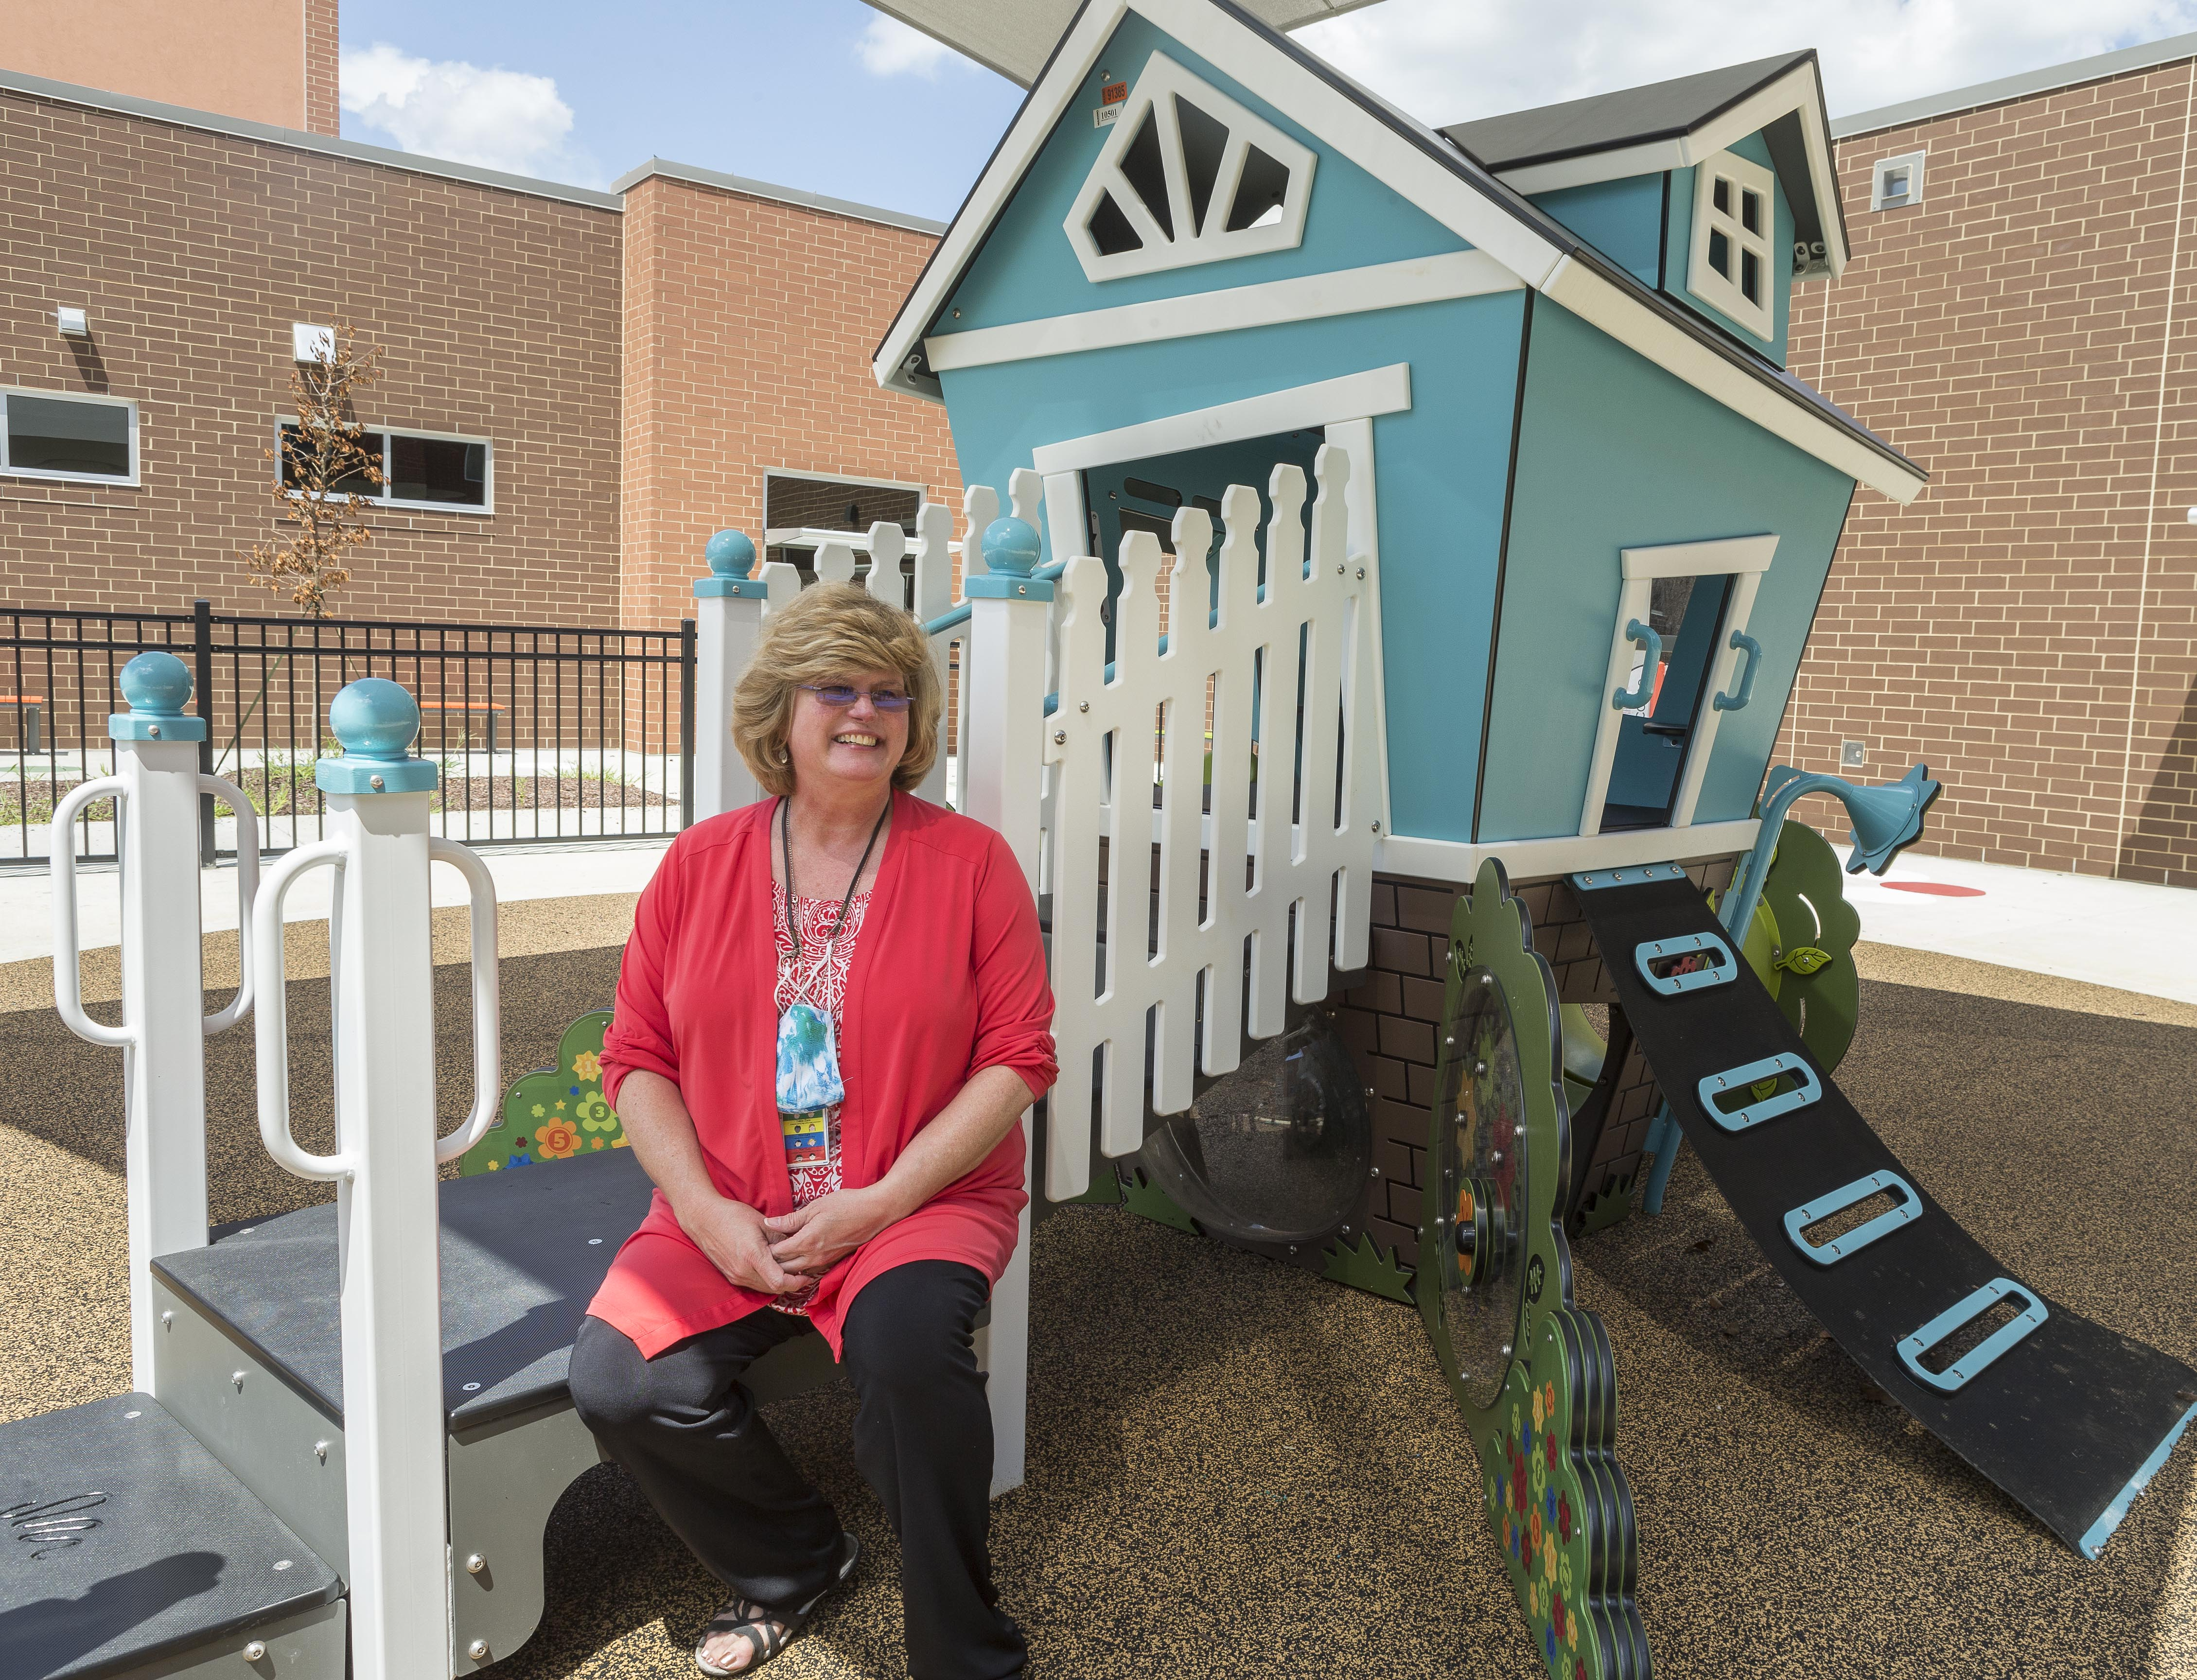 Kim Short, principal at South Lakes Elementary School, on the Pre-K playground